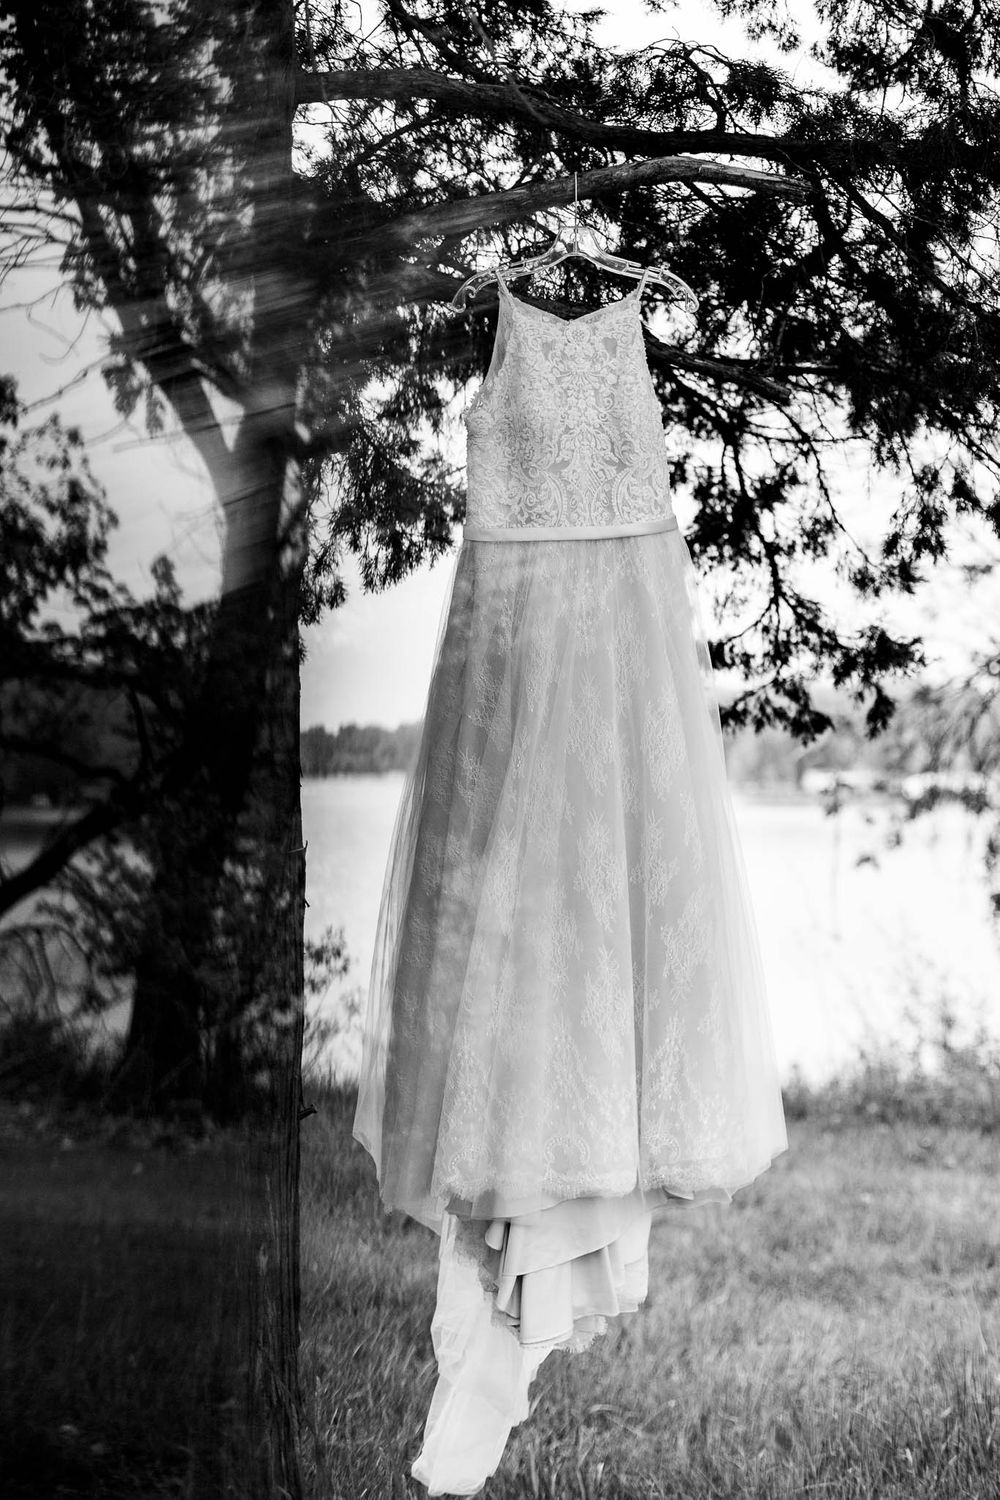 A wedding dress hangs from a tree at Camp Nebowa in Iowa